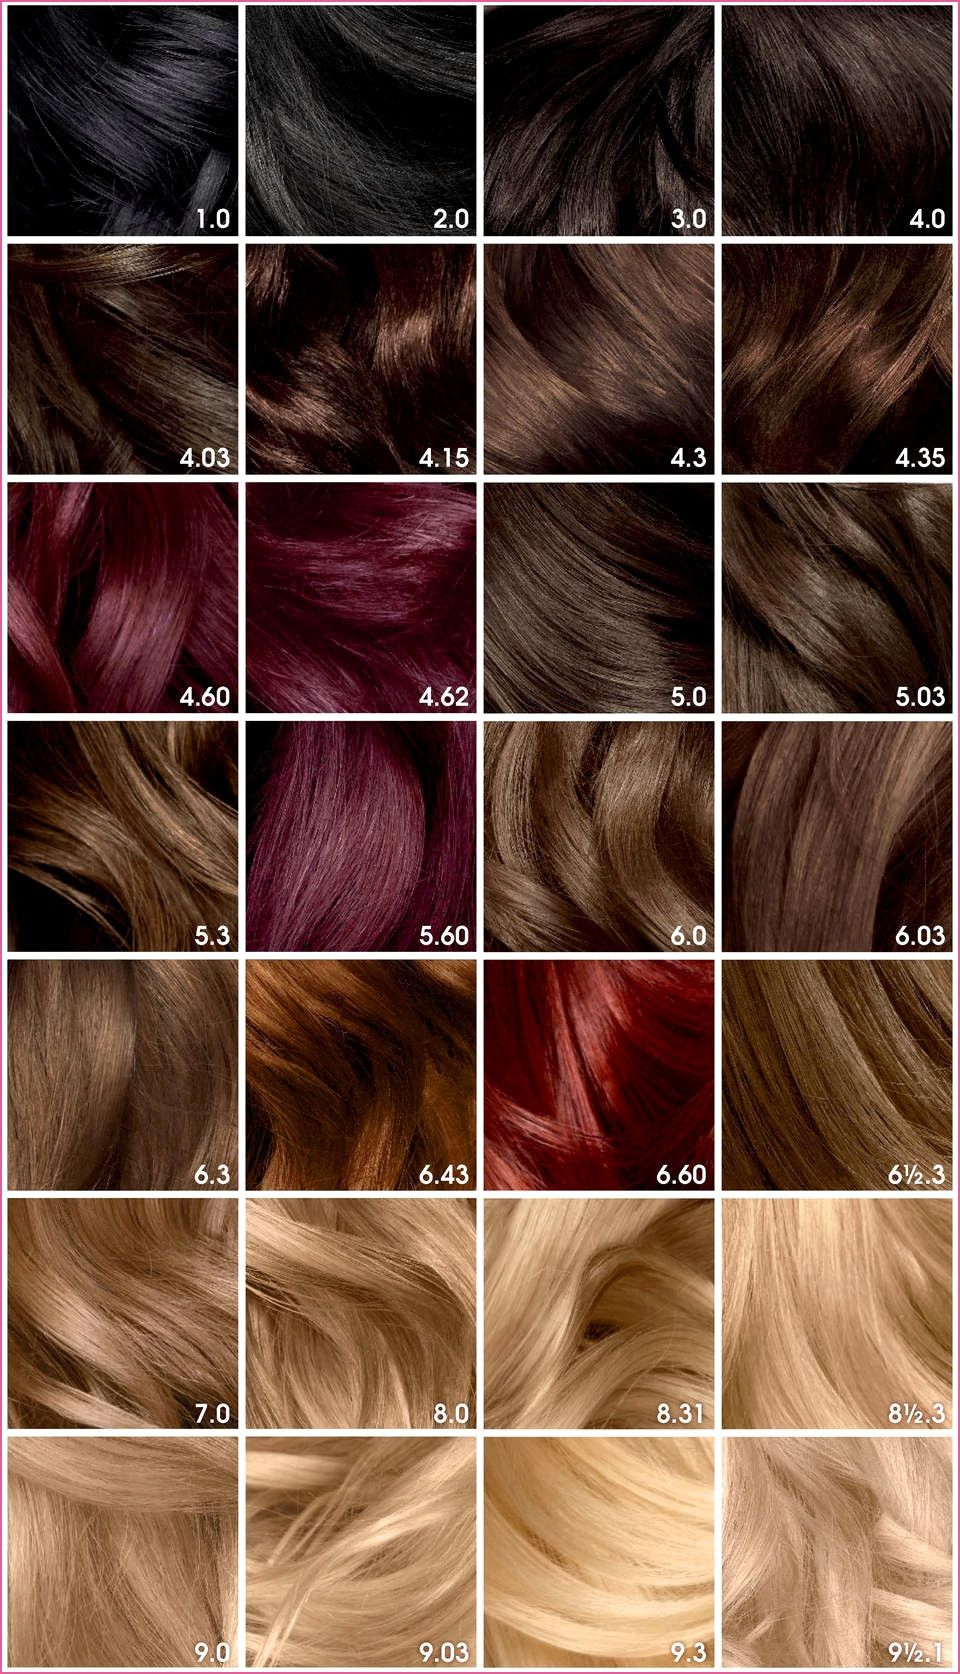 Where To Buy Redken Hair Color In 2020 Olia Hair Color Garnier Hair Color Hair Color Chart